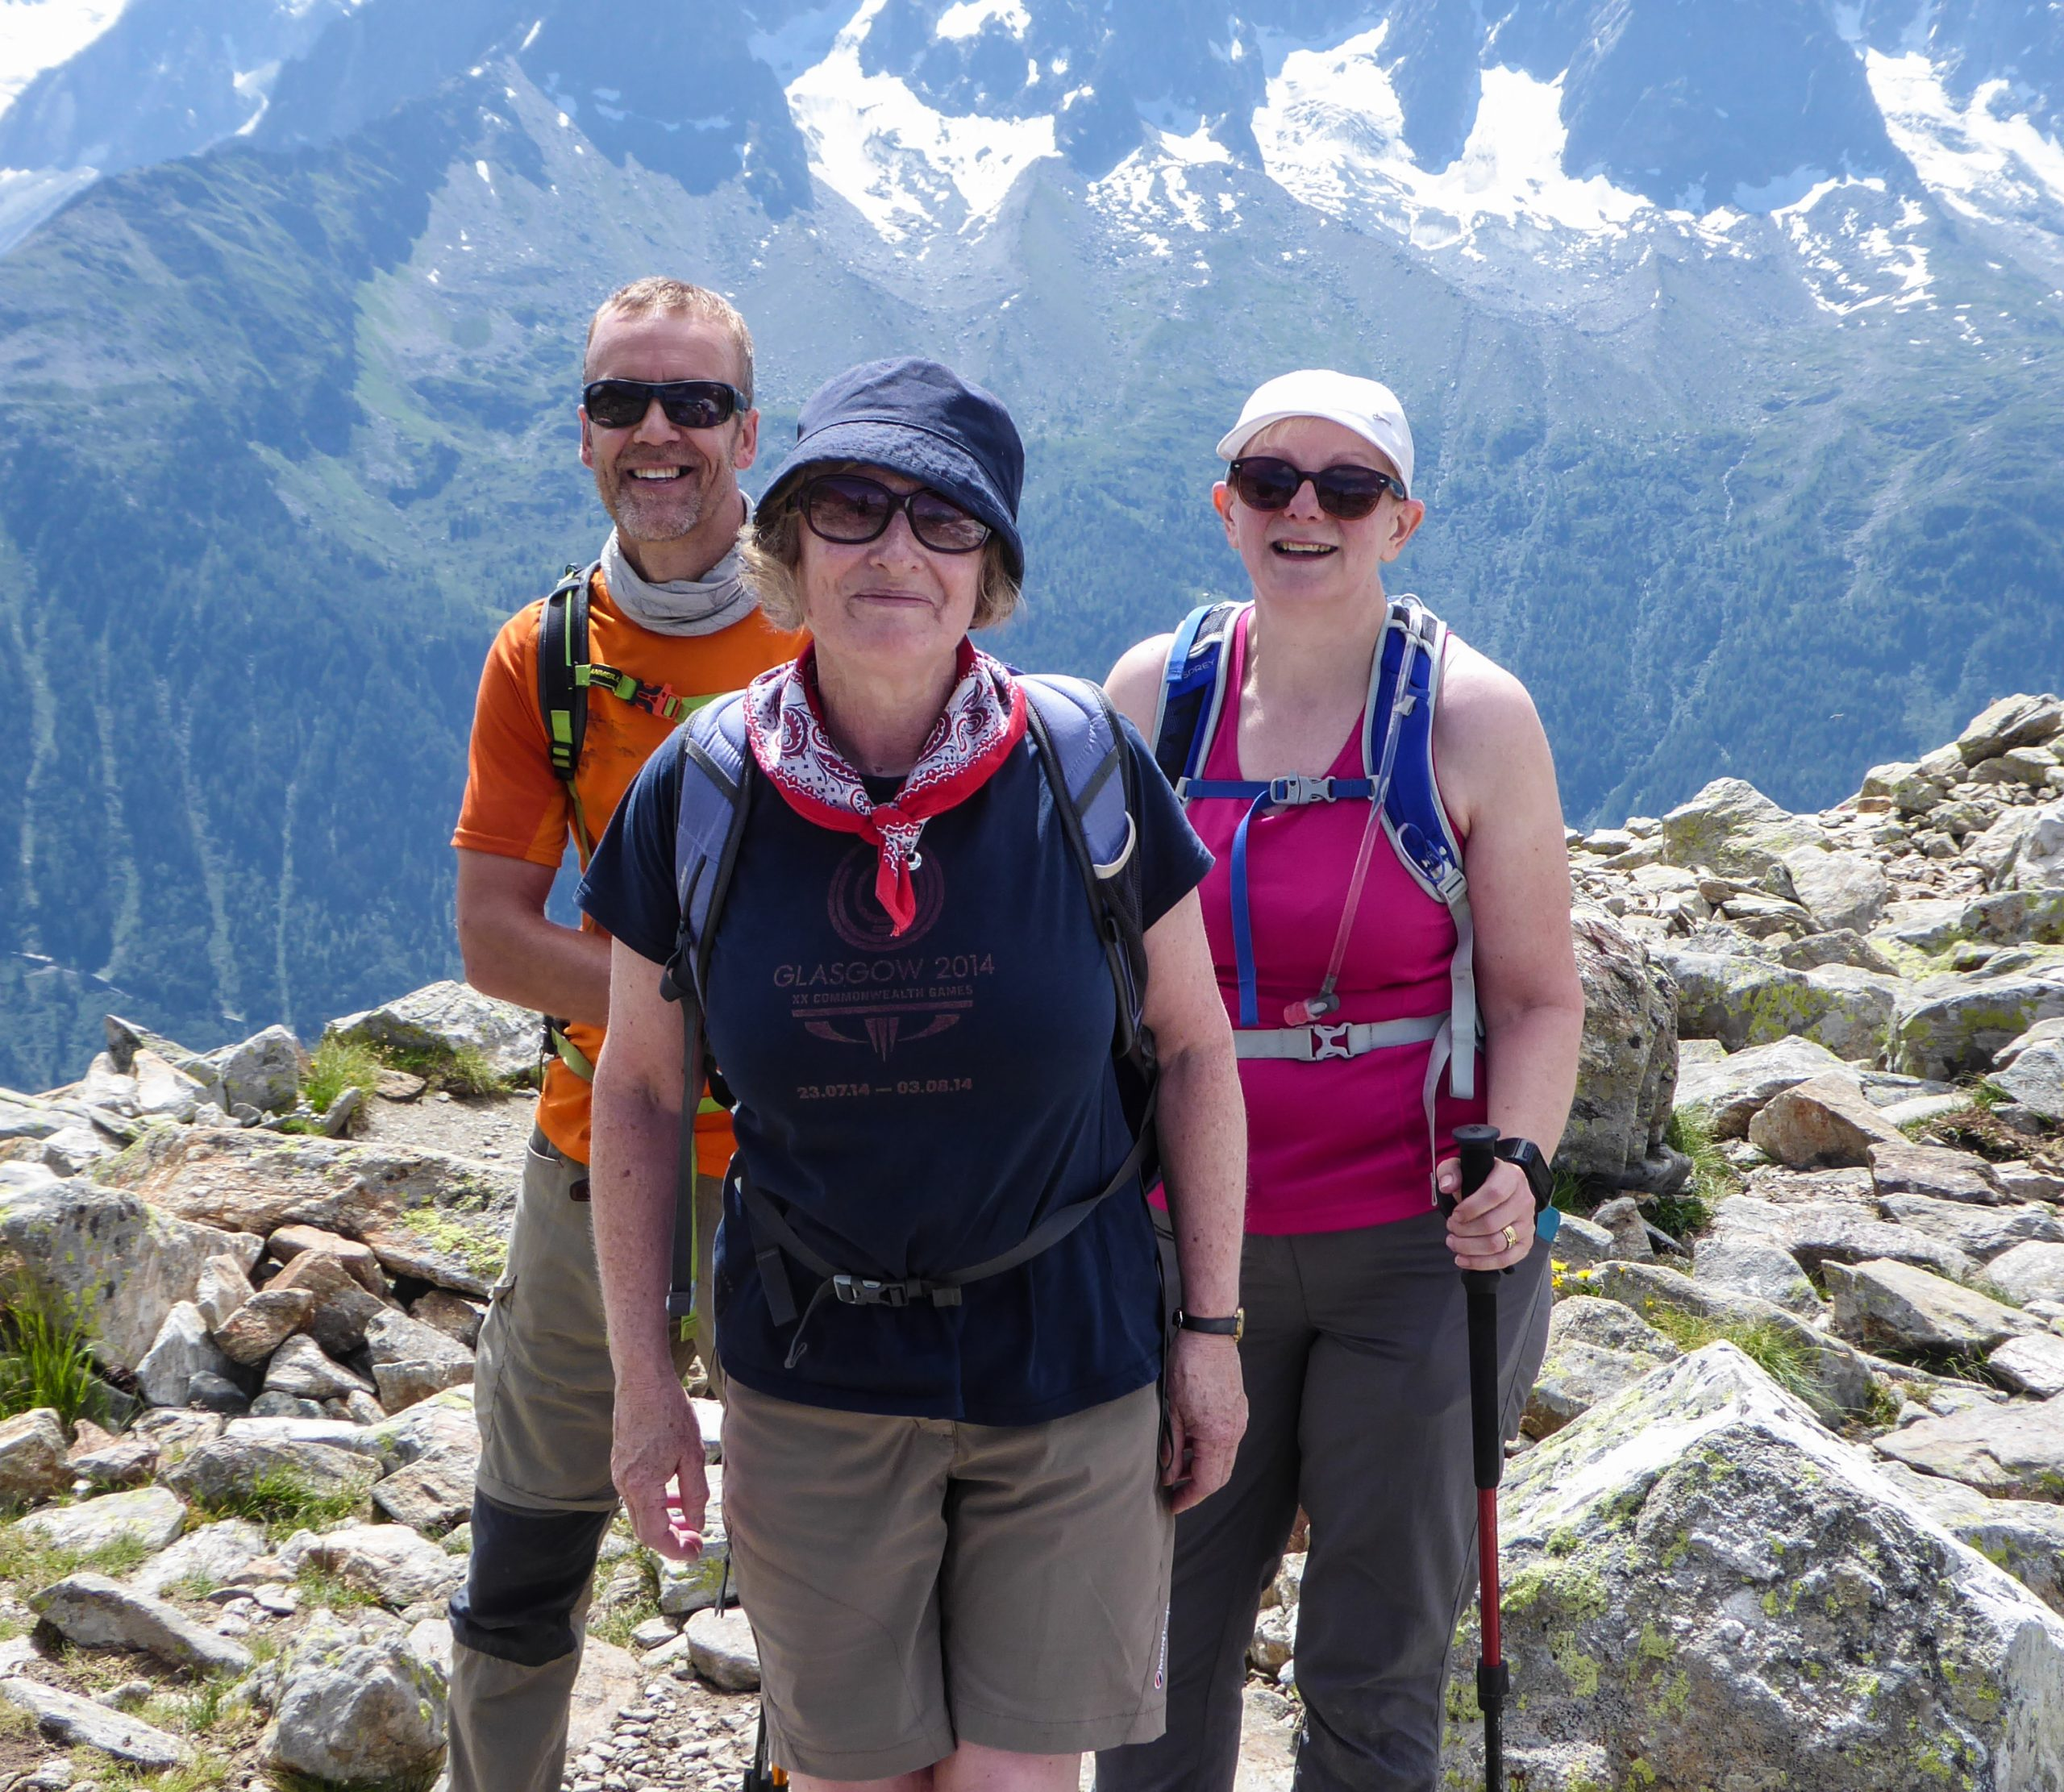 image: happy guests in Chamonix